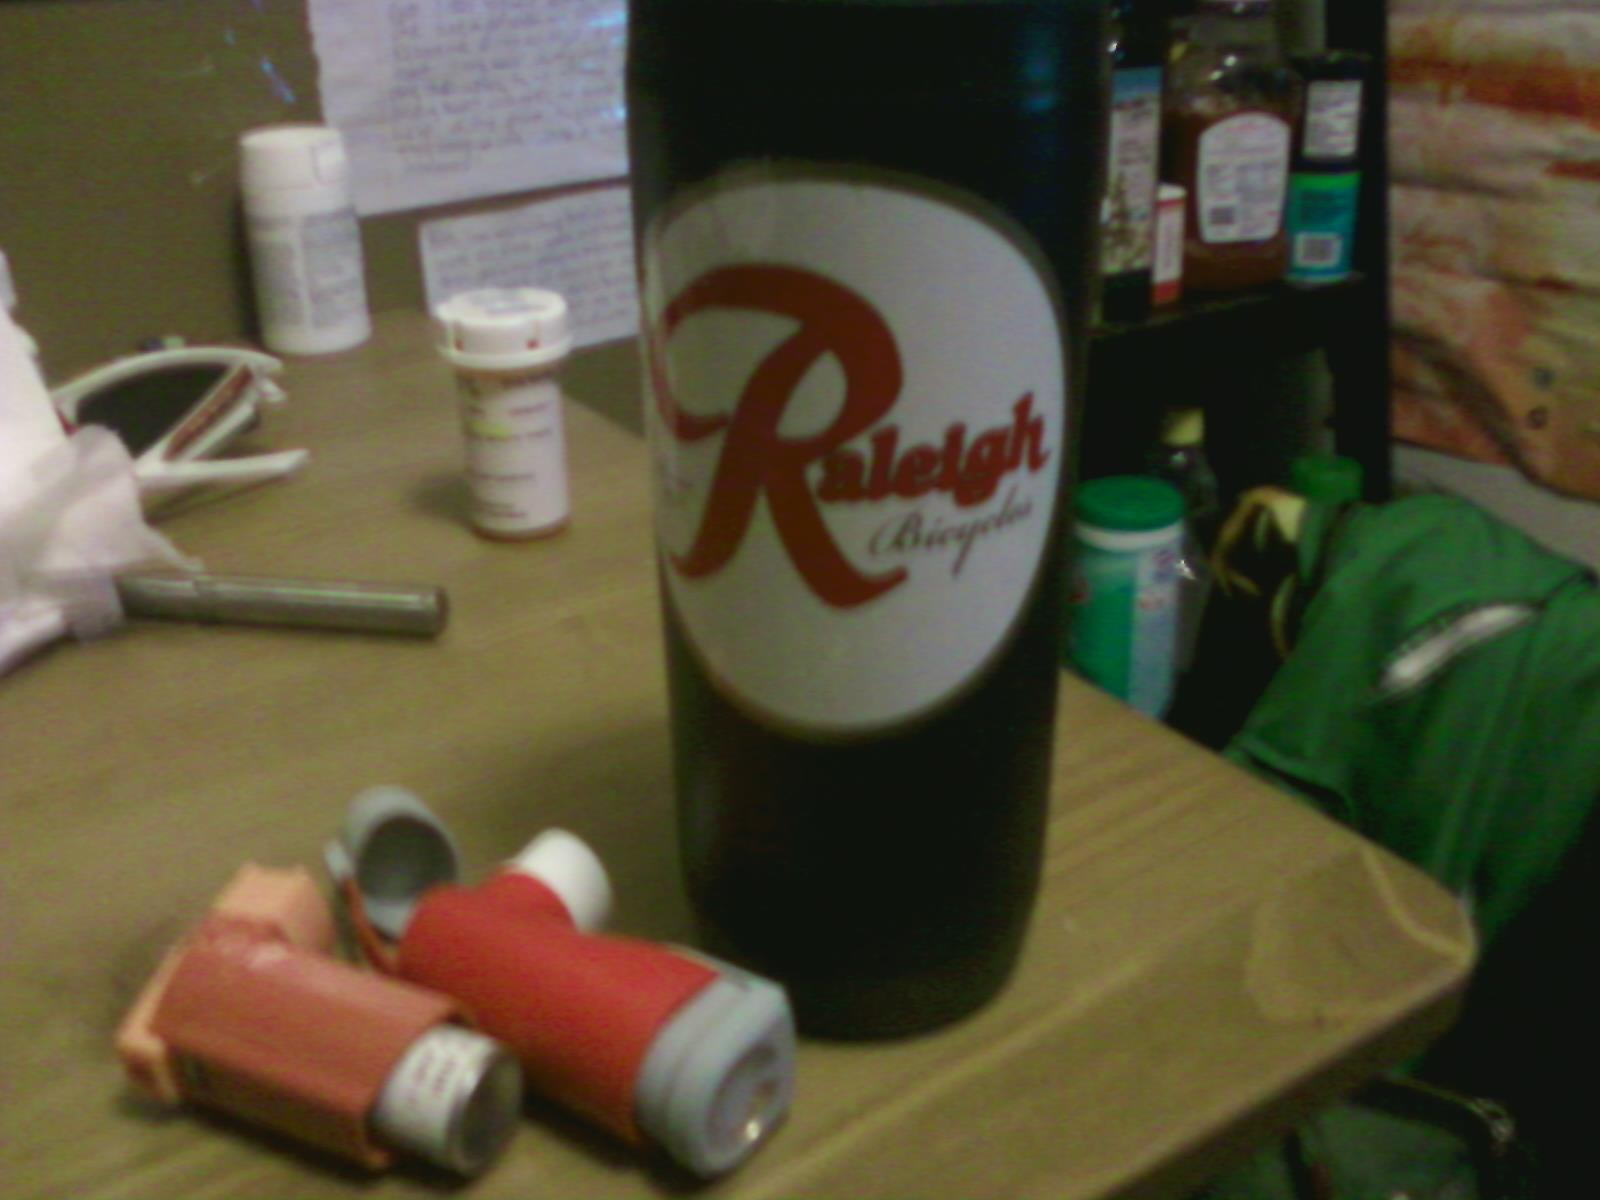 Raleigh coffee thermos, inhalers and antiobiotics